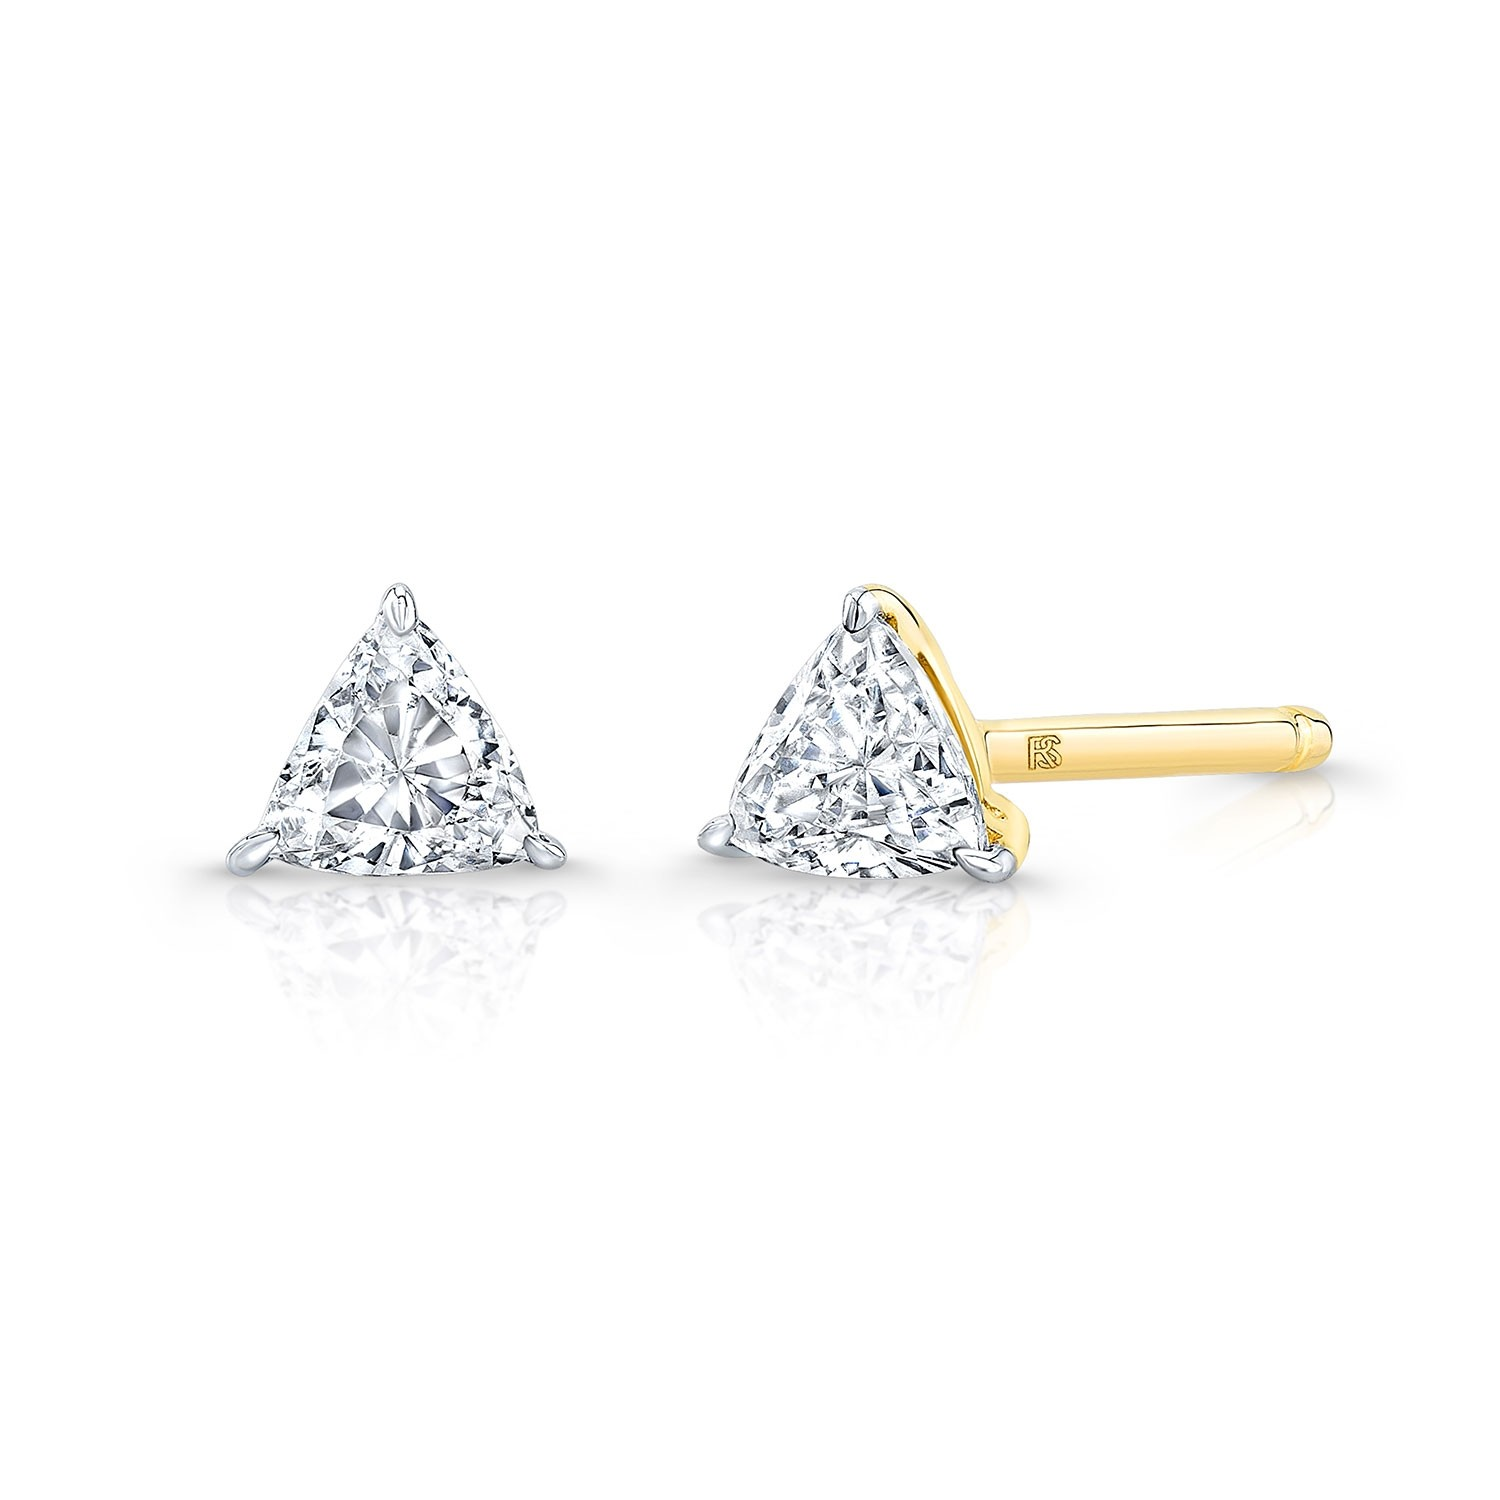 14k Yellow Gold Floating Trillion Cut Diamond Stud Earrings